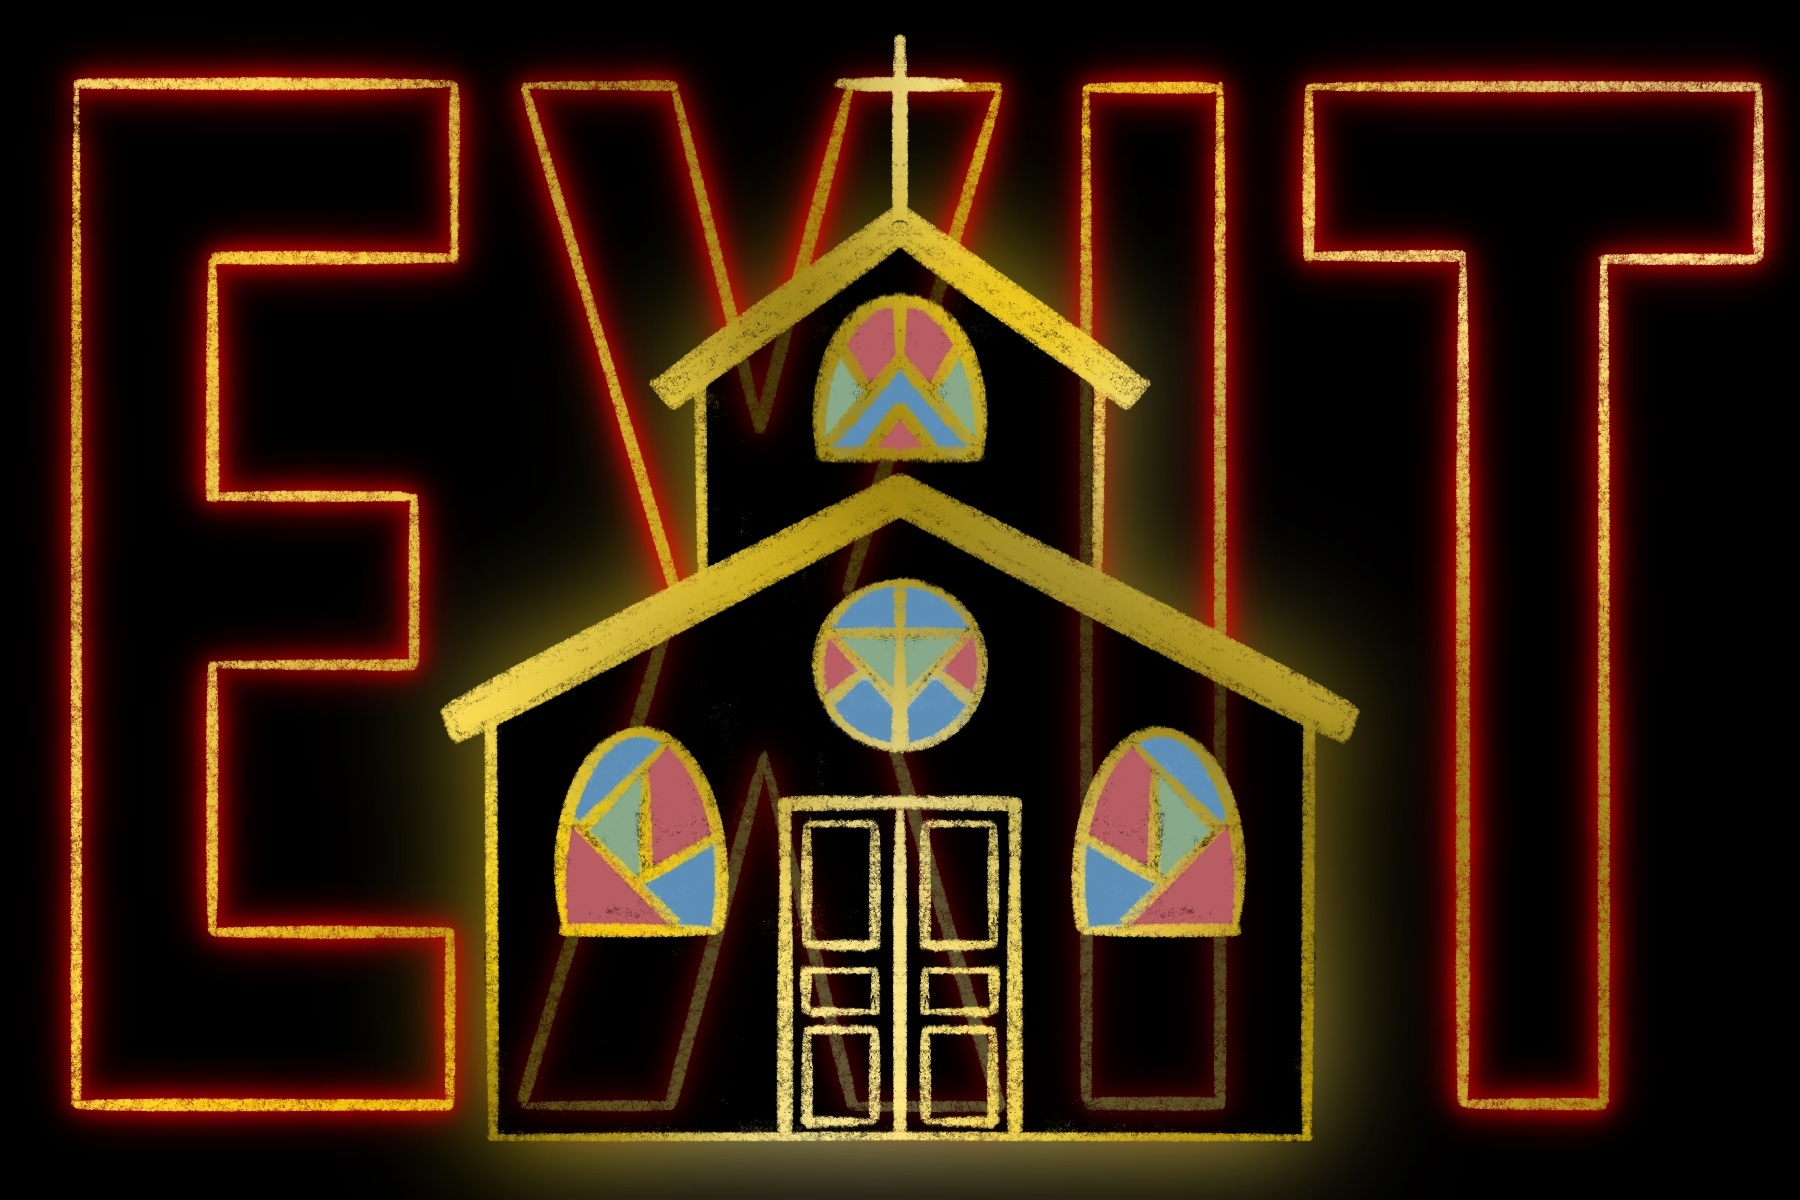 An illustration of the church with the word EXIT behind it.